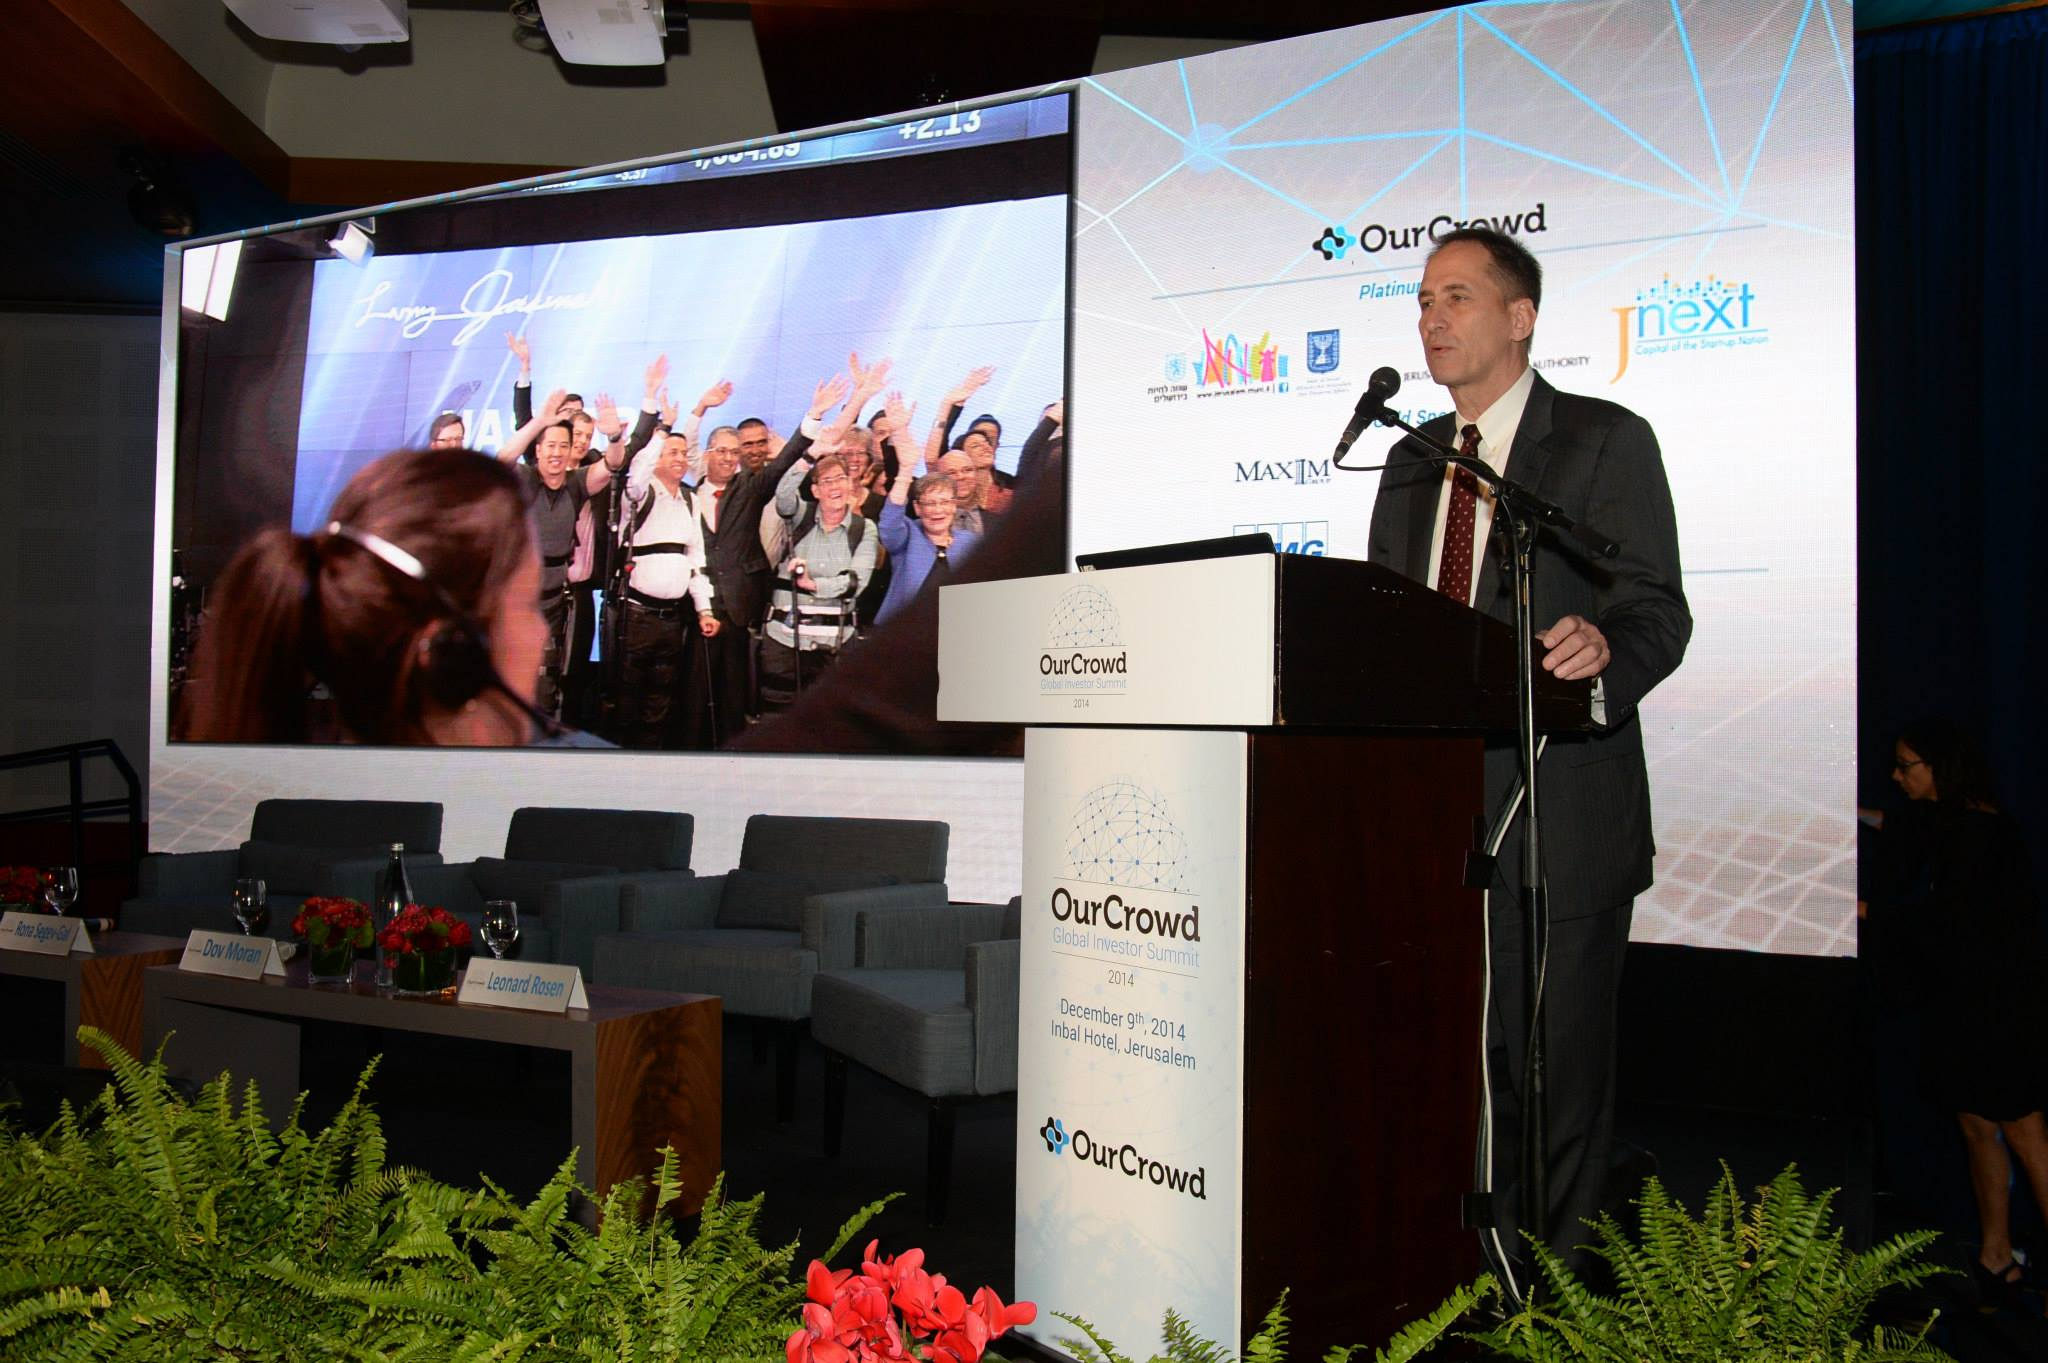 At the OurCrowd Summit 2014